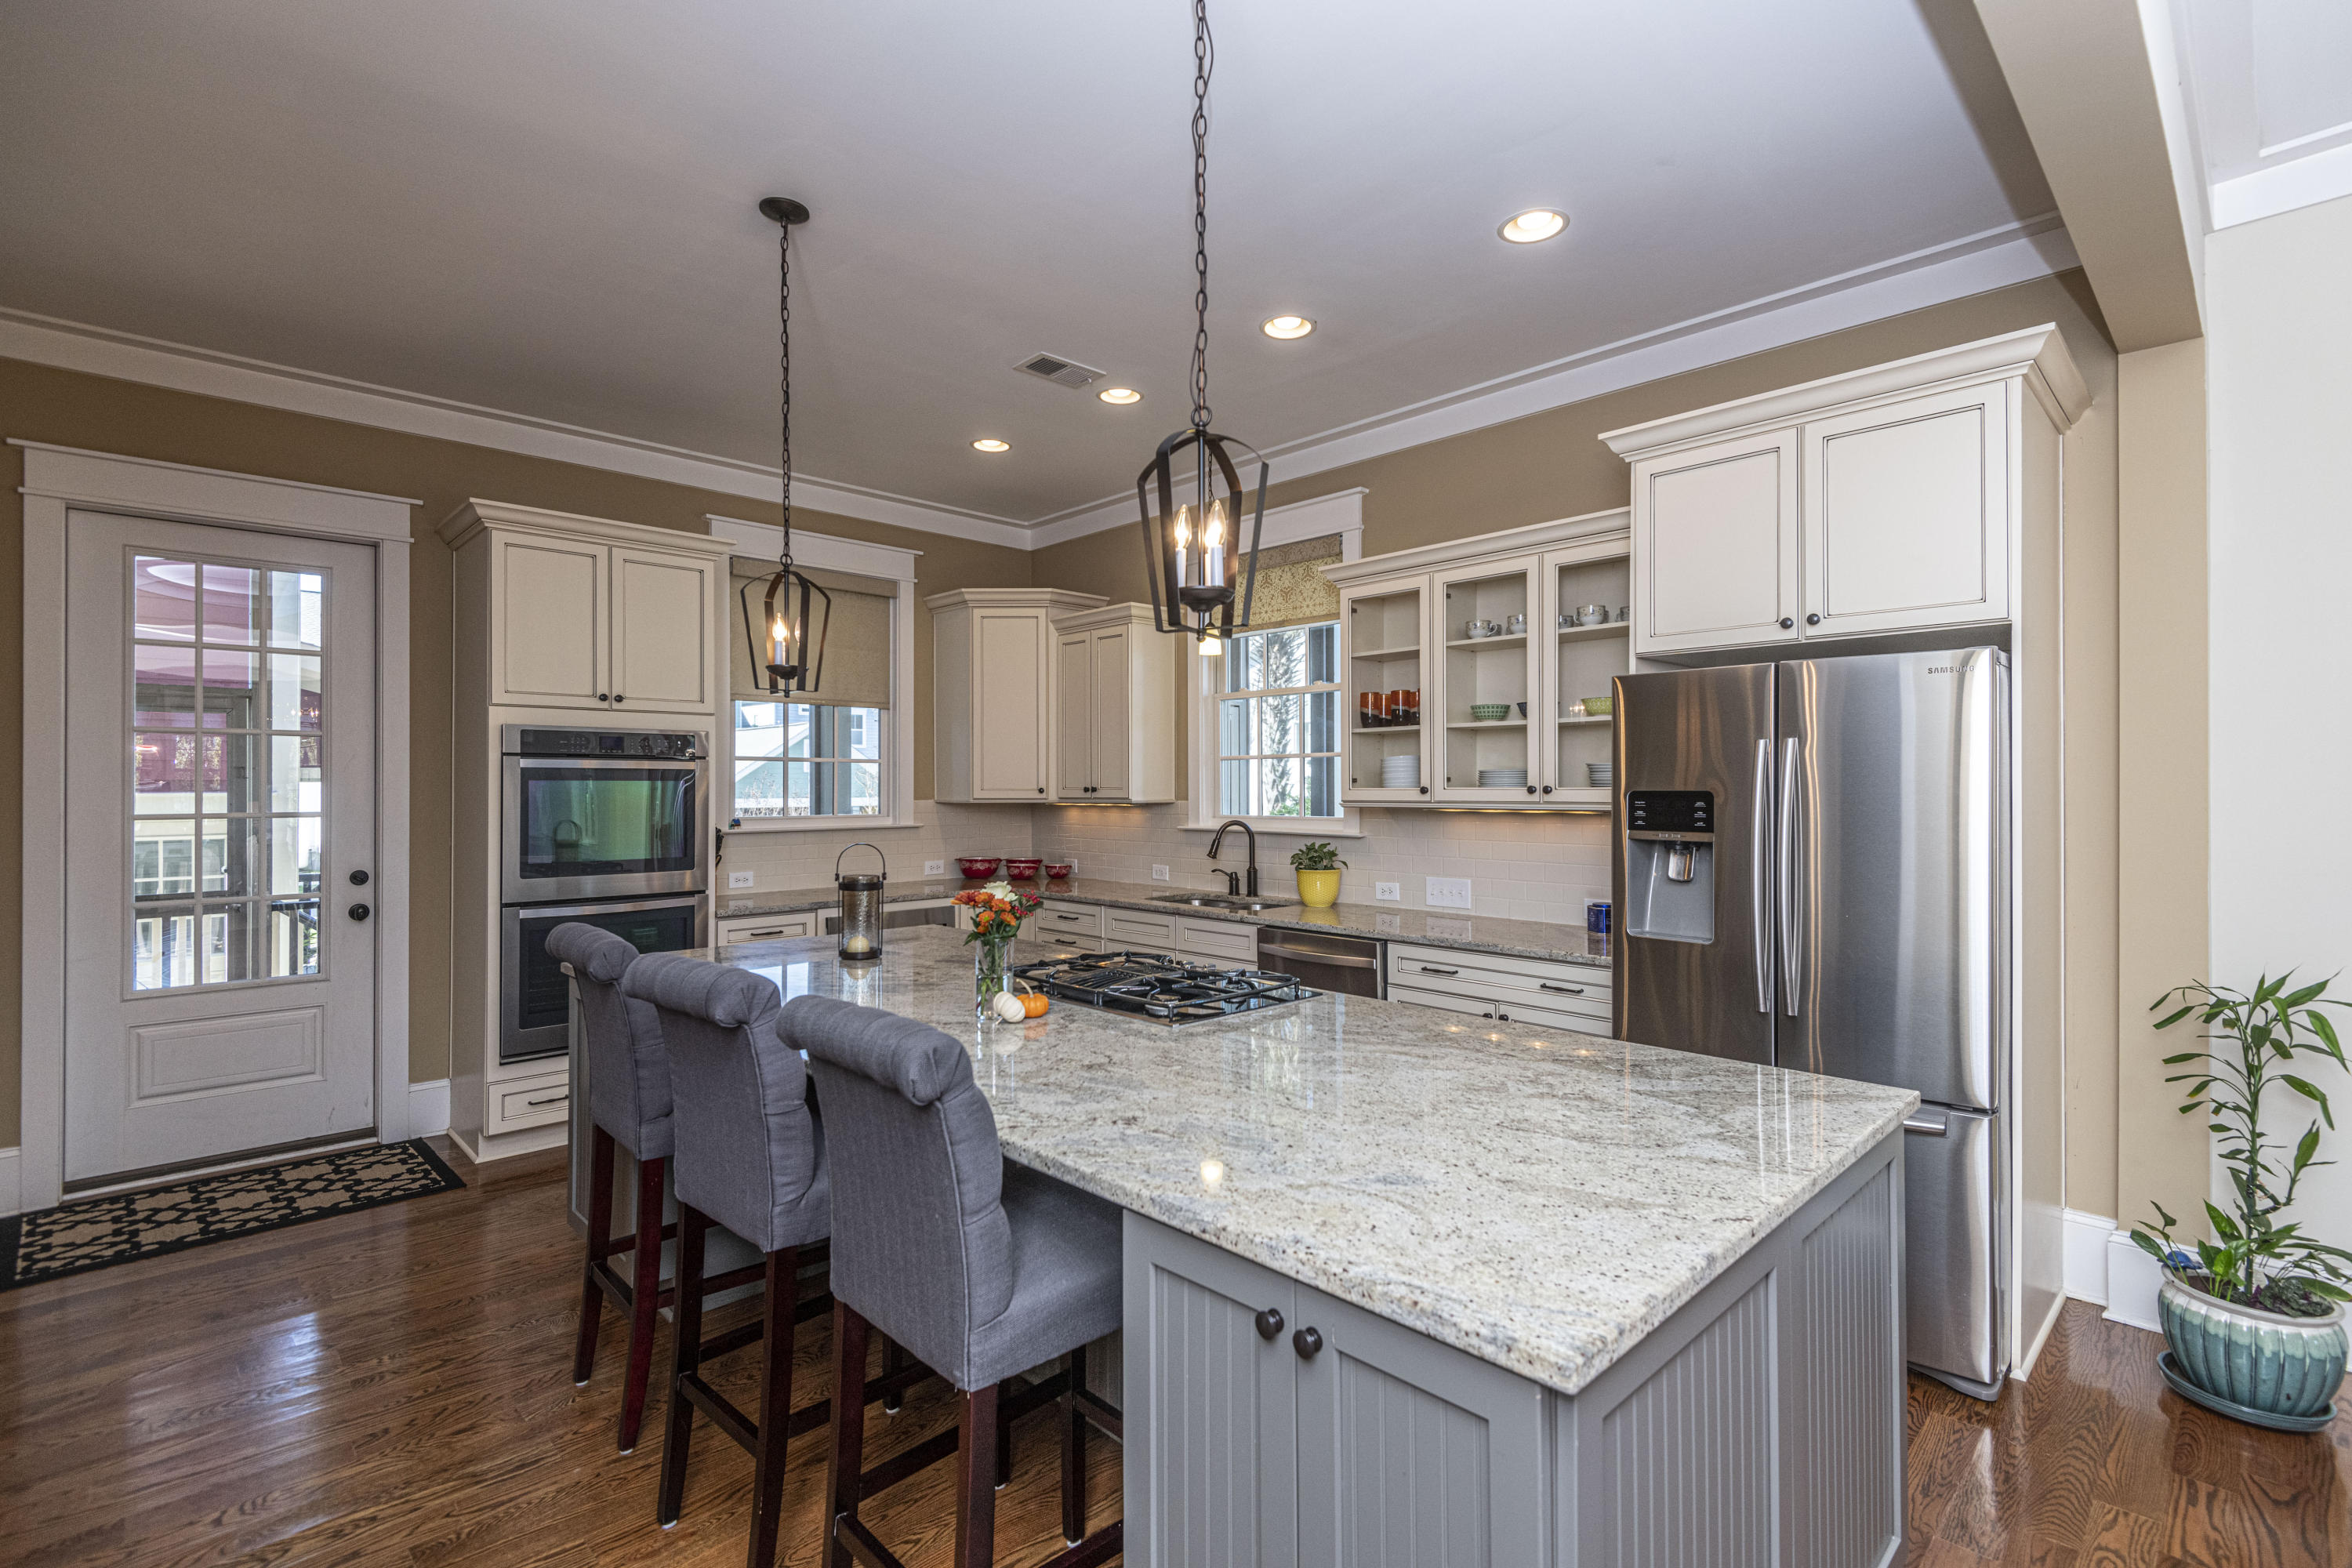 Watermark Homes For Sale - 1401 Lettered Olive, Mount Pleasant, SC - 4